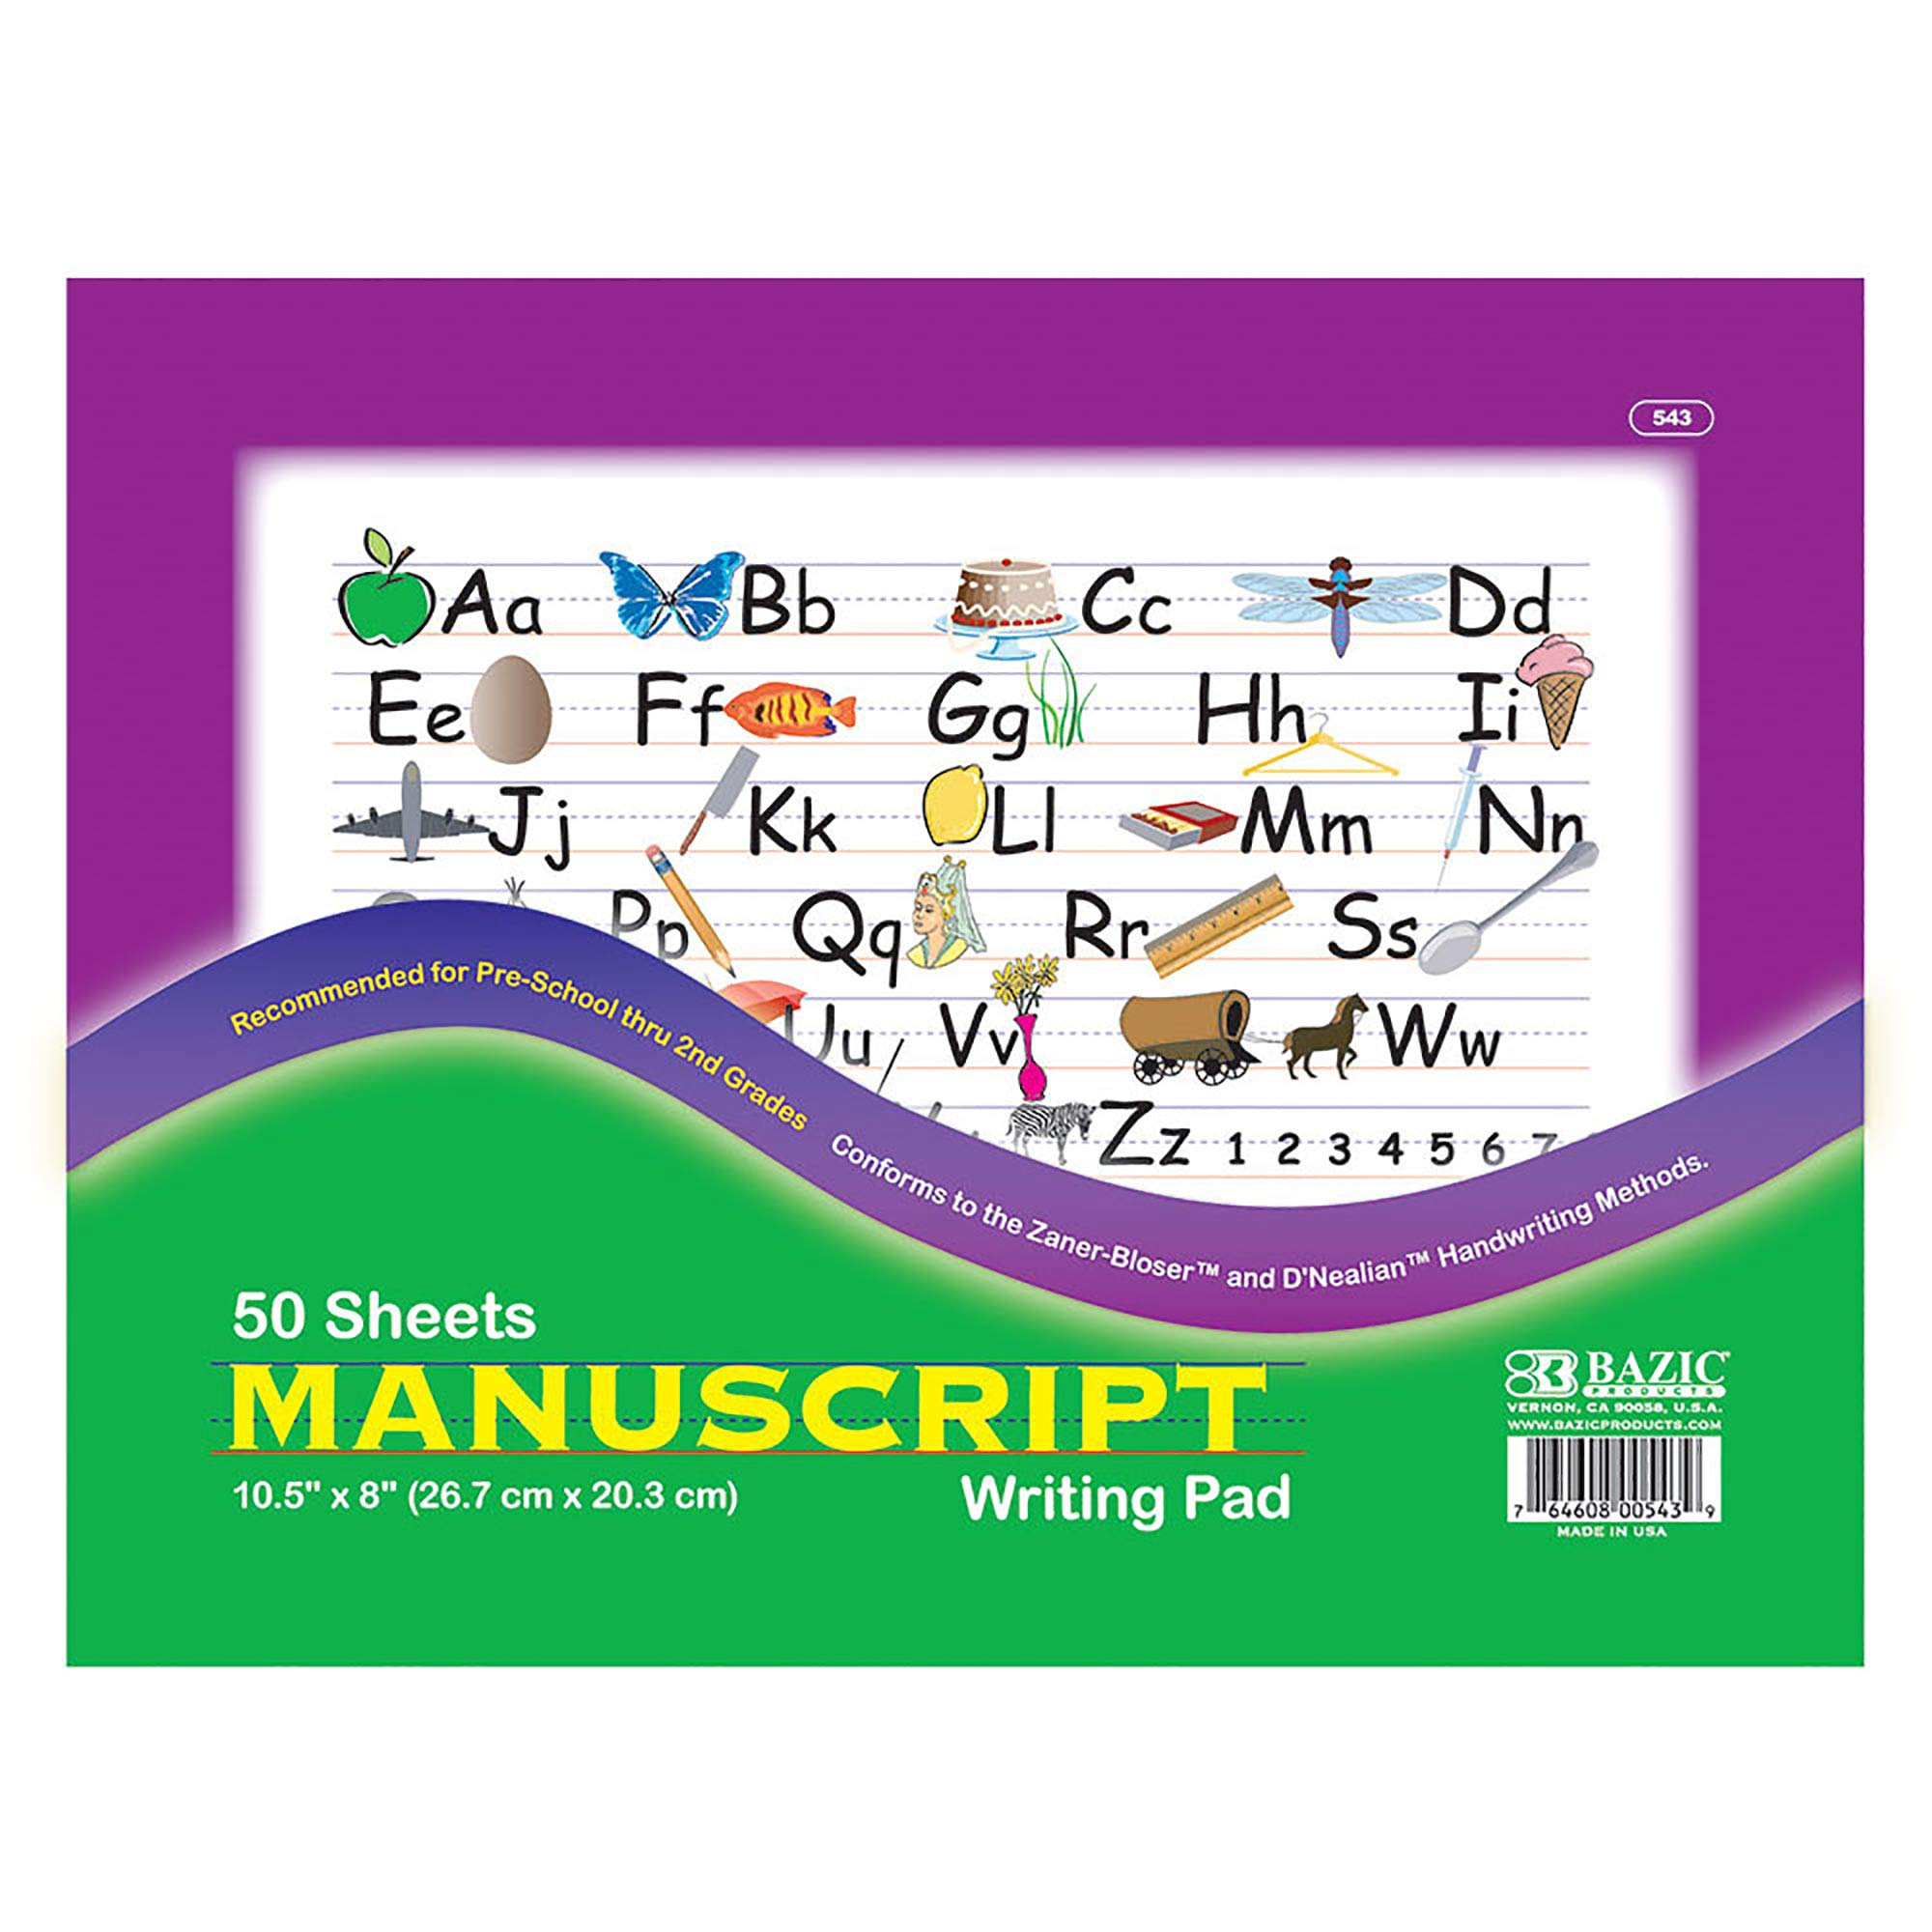 BAZIC 50 Ct. 10.5'' X 8'' Manuscript Writing Pad (Case of 48) by B BAZIC PRODUCTS